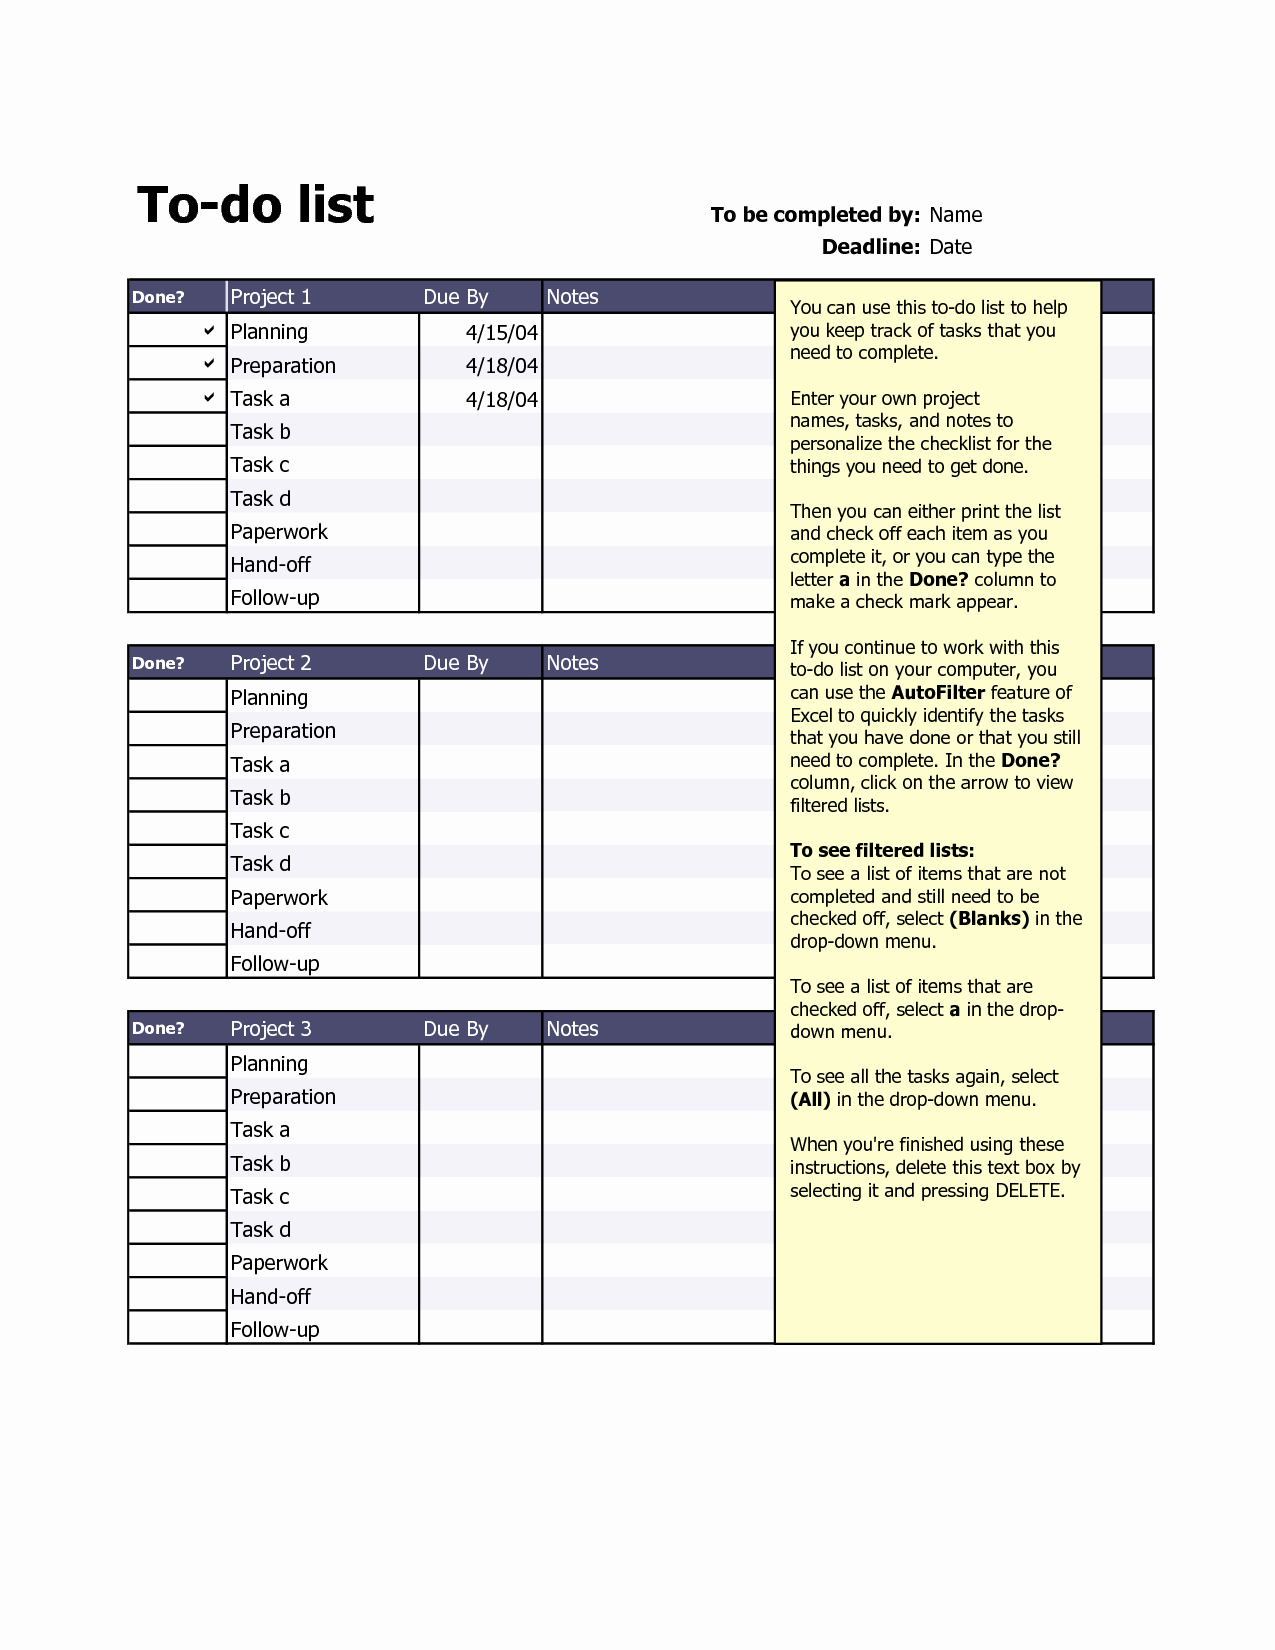 To Do List Excel Template Luxury Best S Of Excel Do List Template to Do Task List